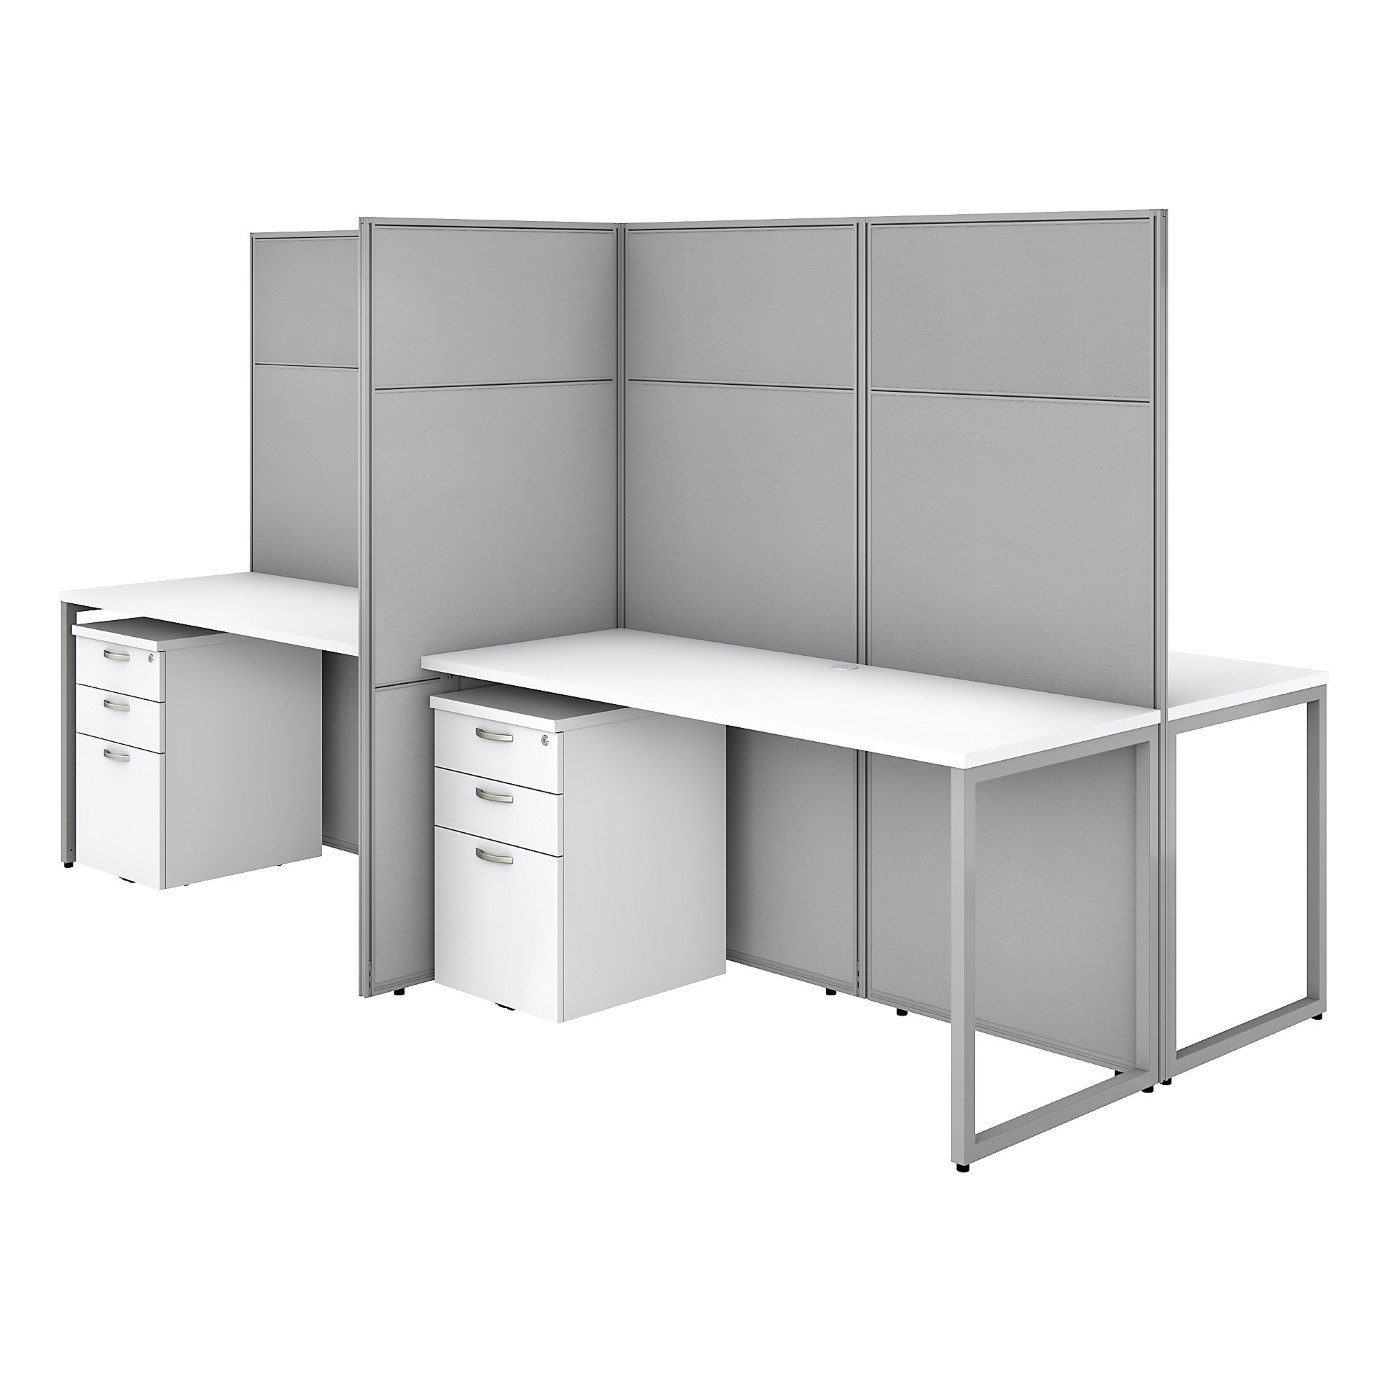 BUSH BUSINESS FURNITURE EASY OFFICE 60W 4 PERSON CUBICLE DESK WITH FILE CABINETS AND 66H PANELS. FREE SHIPPING